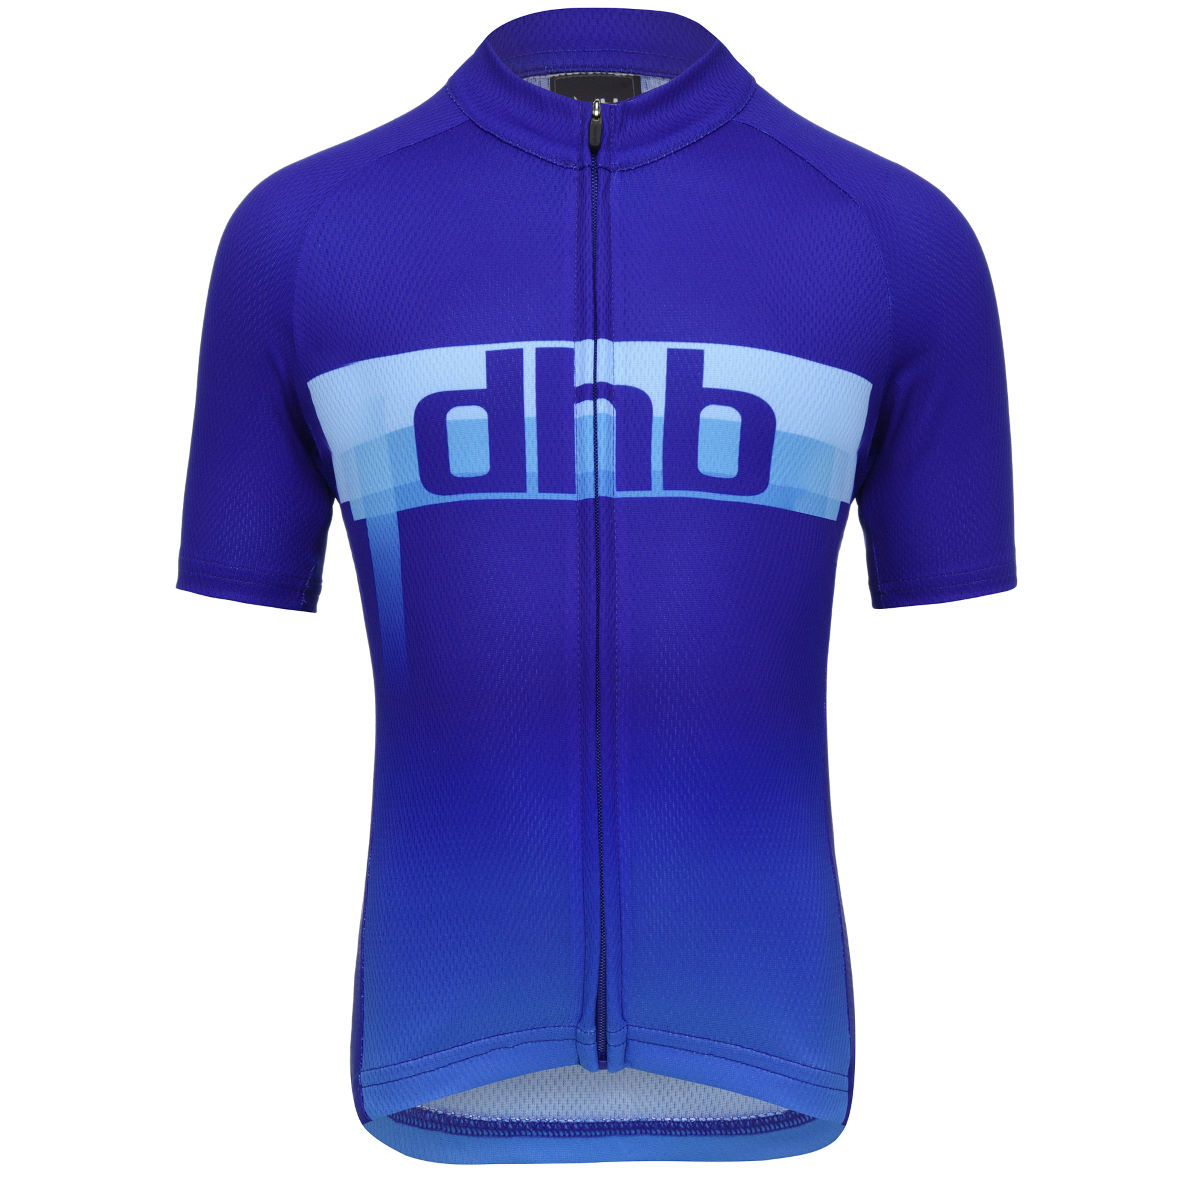 Maillot Enfant dhb Blur (manches courtes) - 6-8 Years